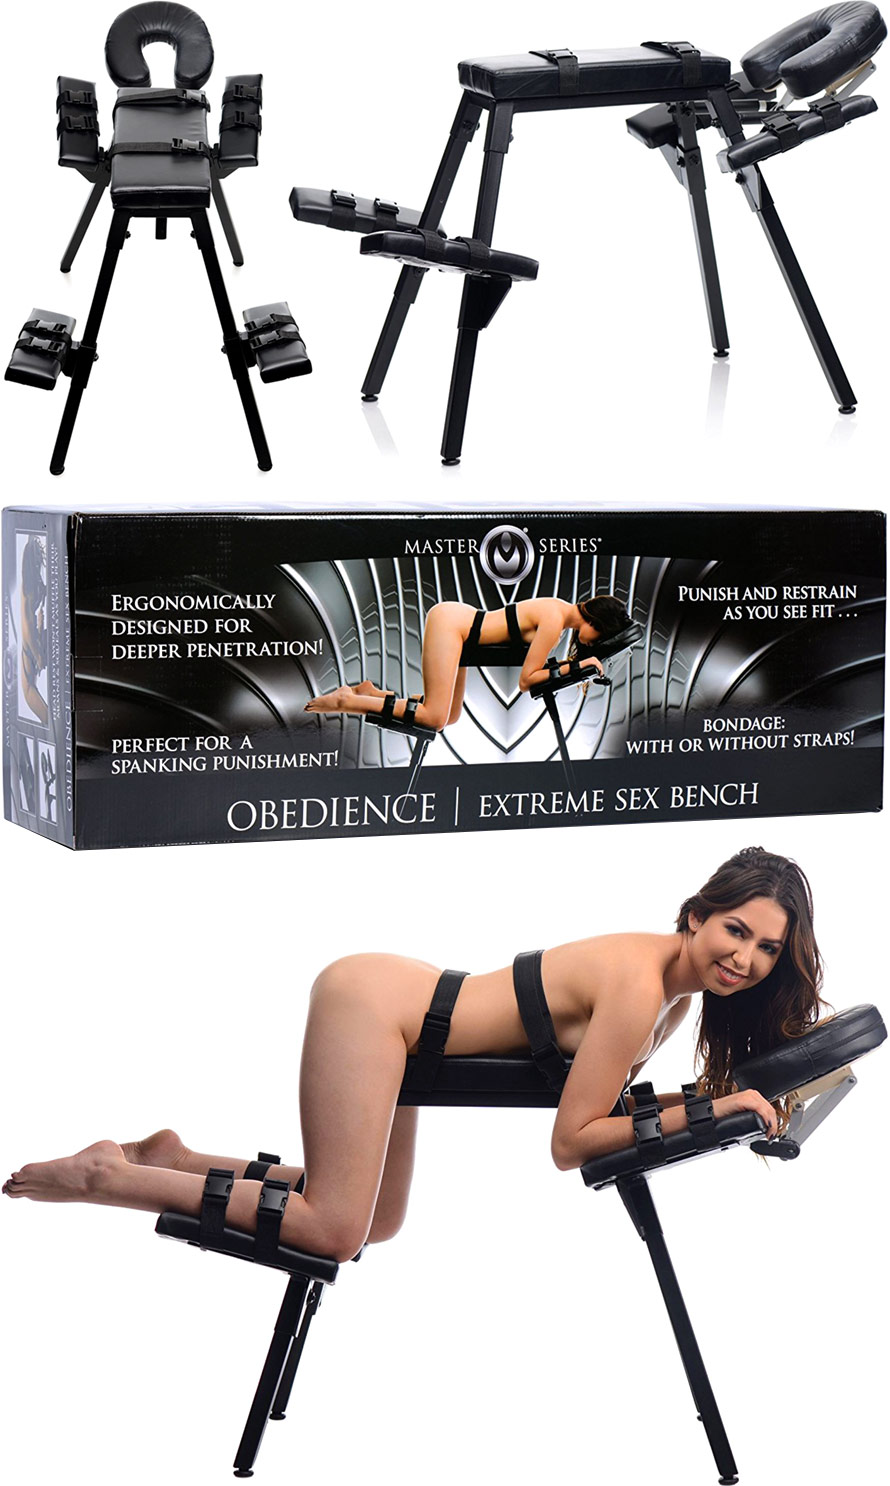 Obedience Extreme Sex Bench Adjustable Bondage Table